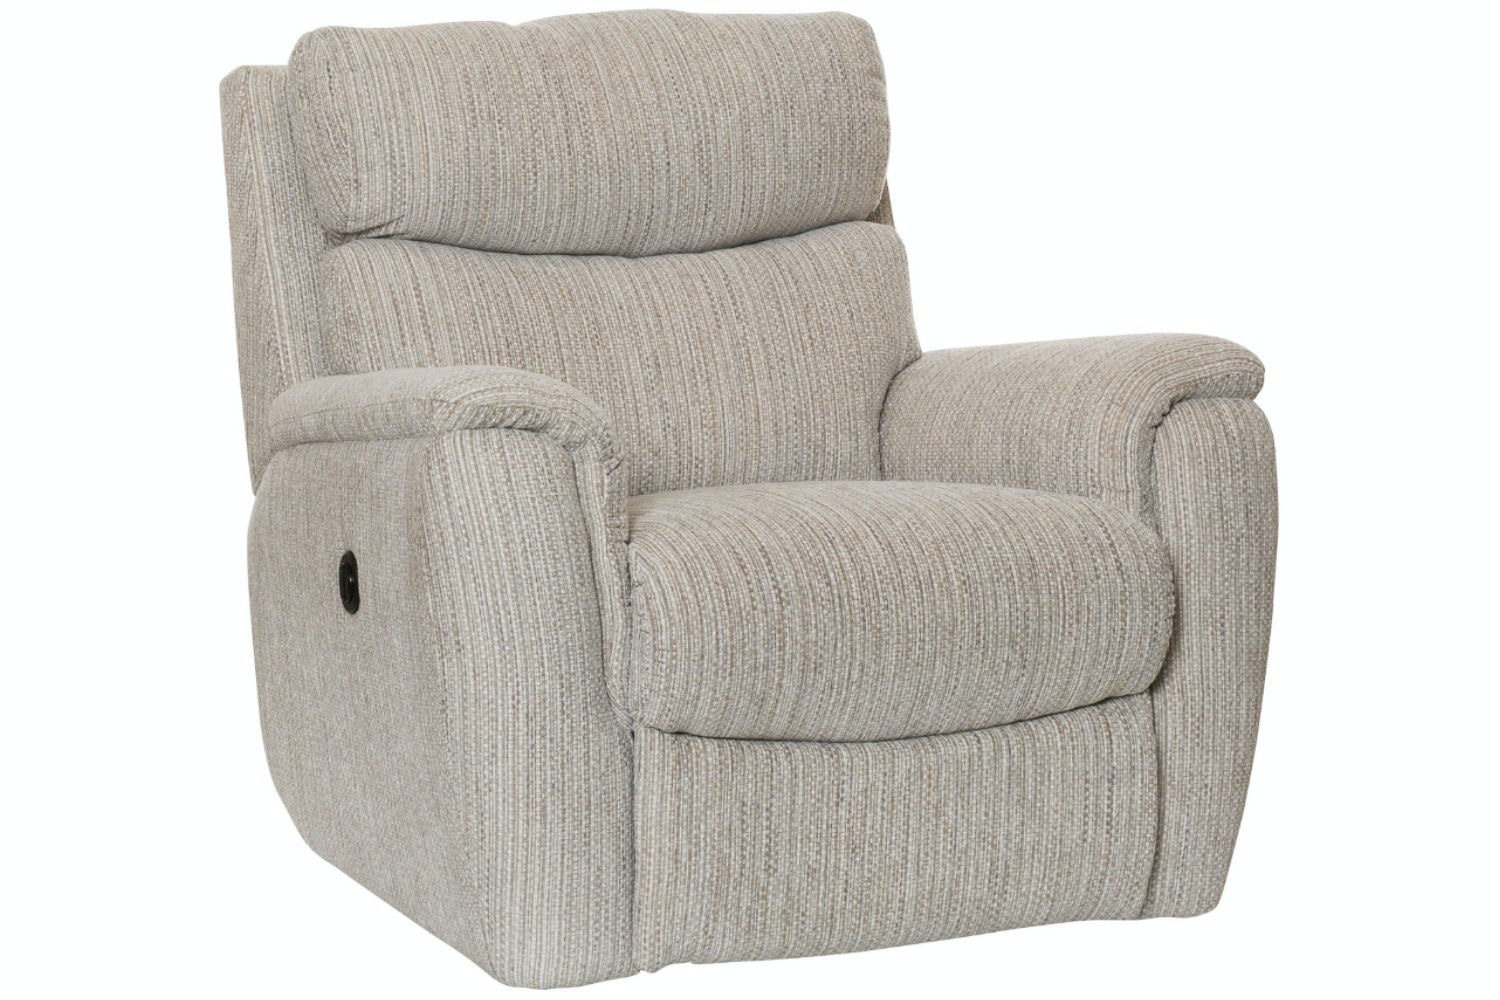 Denver Recliner Armchair